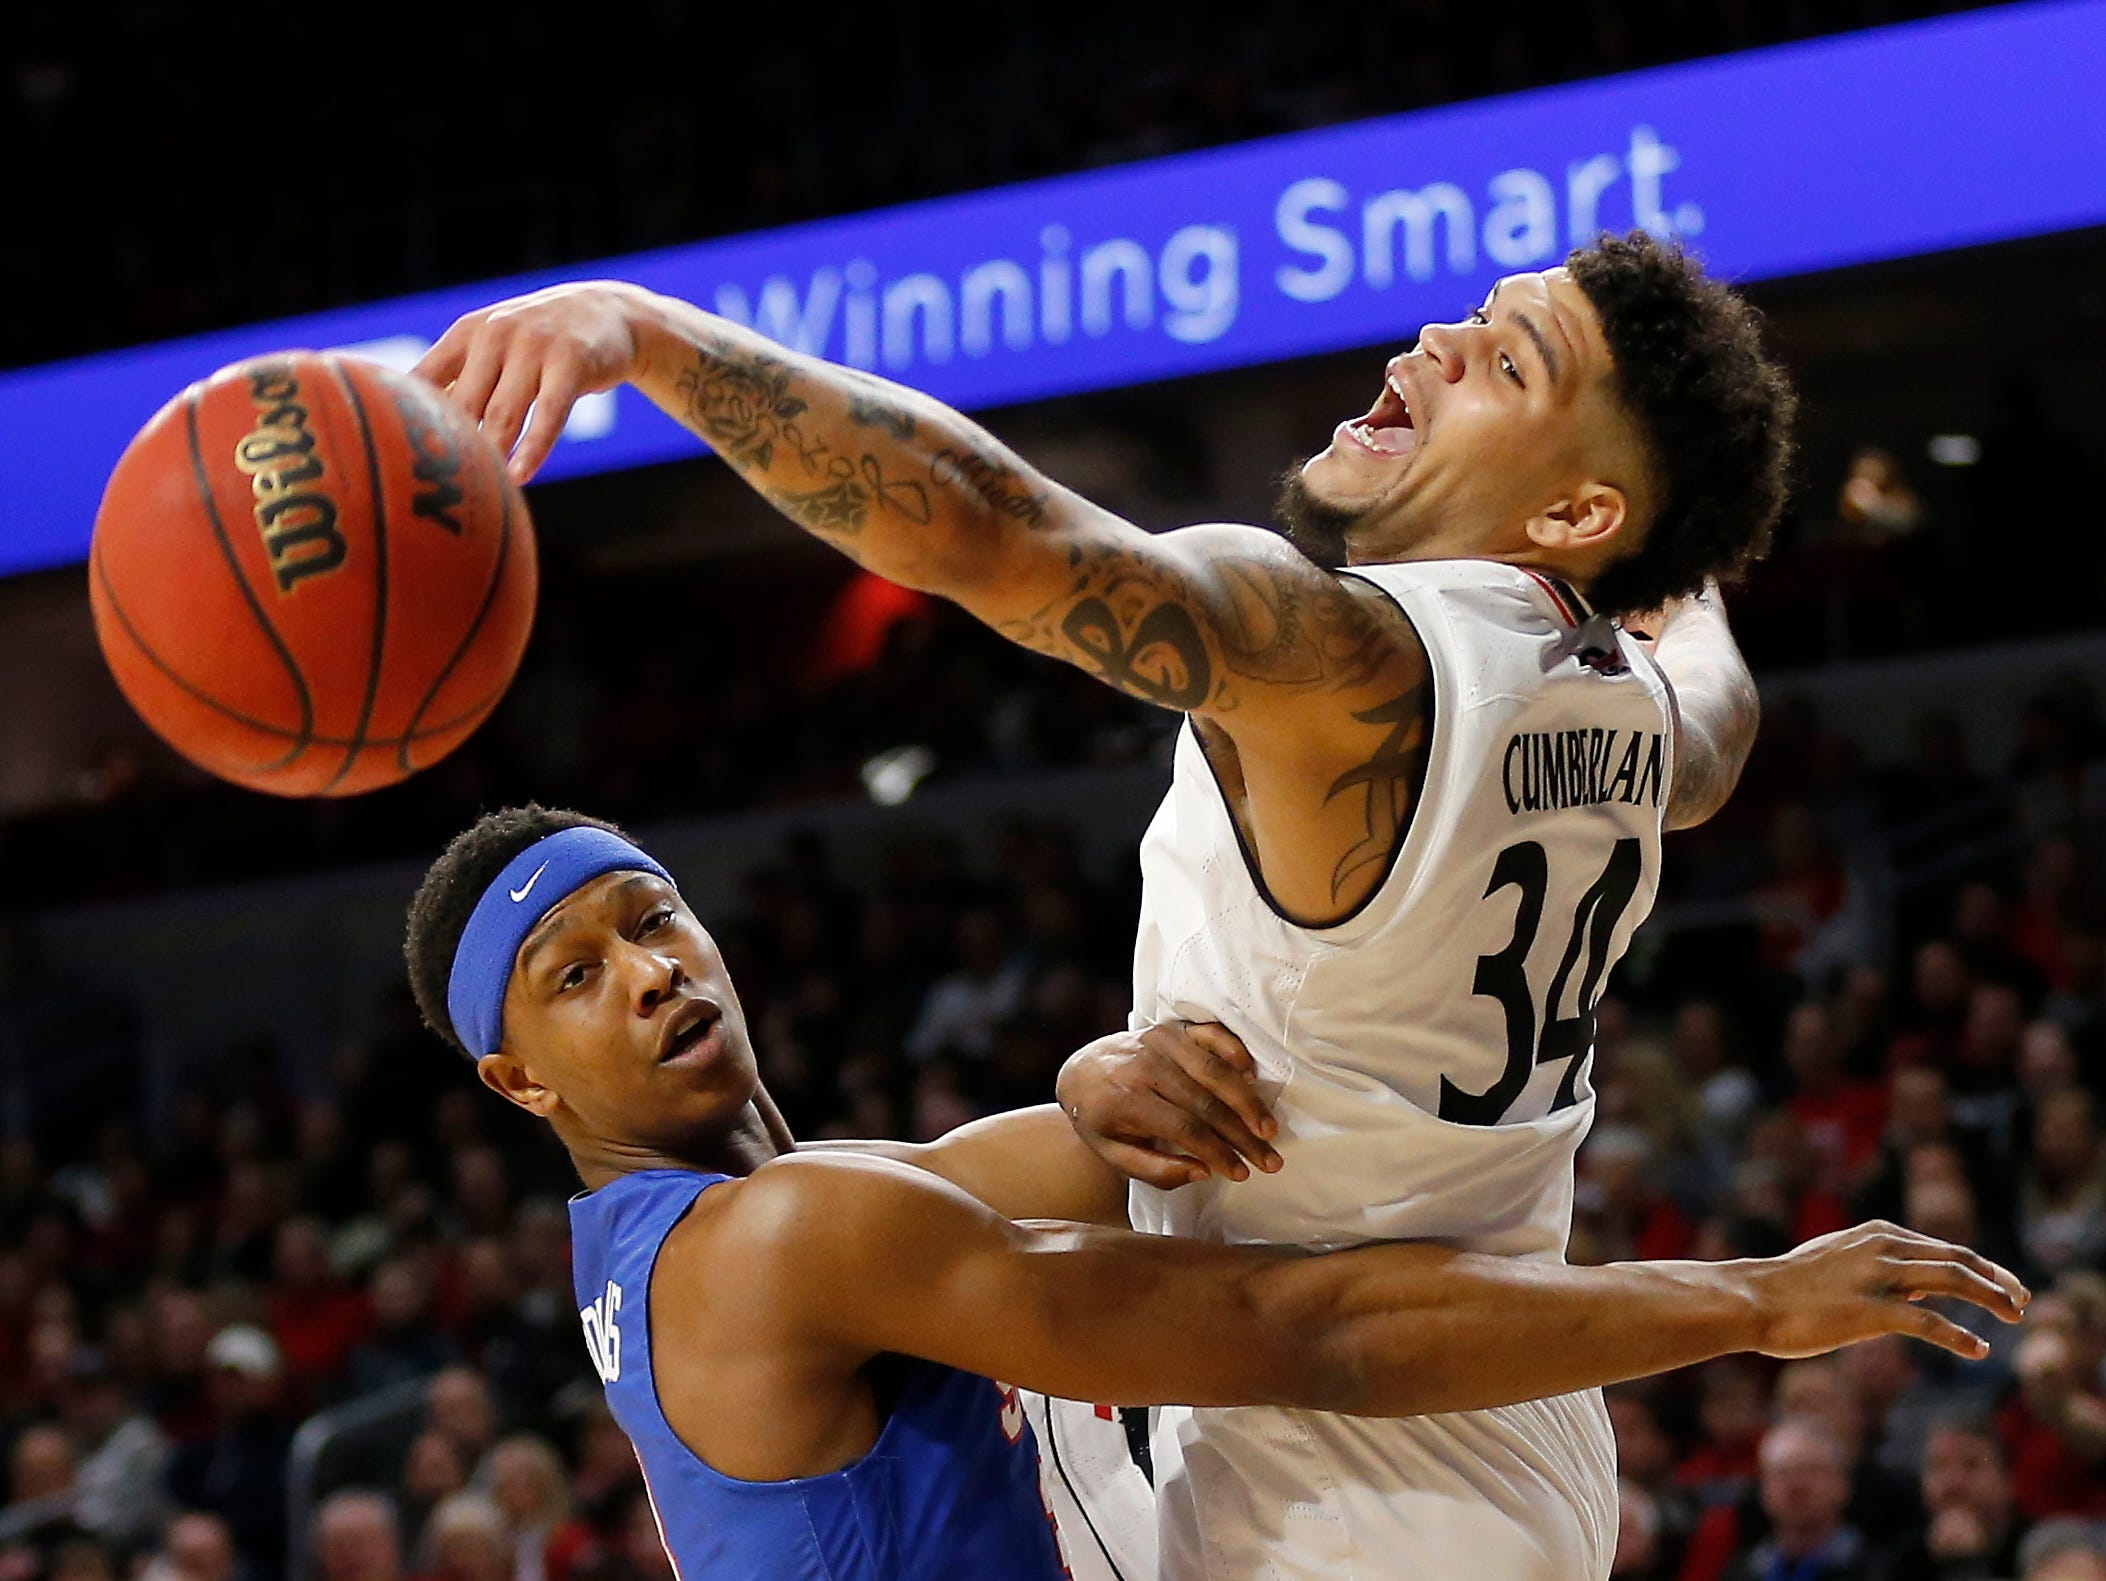 Cincinnati Bearcats guard Jarron Cumberland (34) attempts to knock down an arrant pass in the first half the the NCAA American Athletic Conference basketball game between the Cincinnati Bearcats and the Southern Methodist Mustangs at Fifth Third Arena in Cincinnati on Saturday, Feb. 2, 2019.